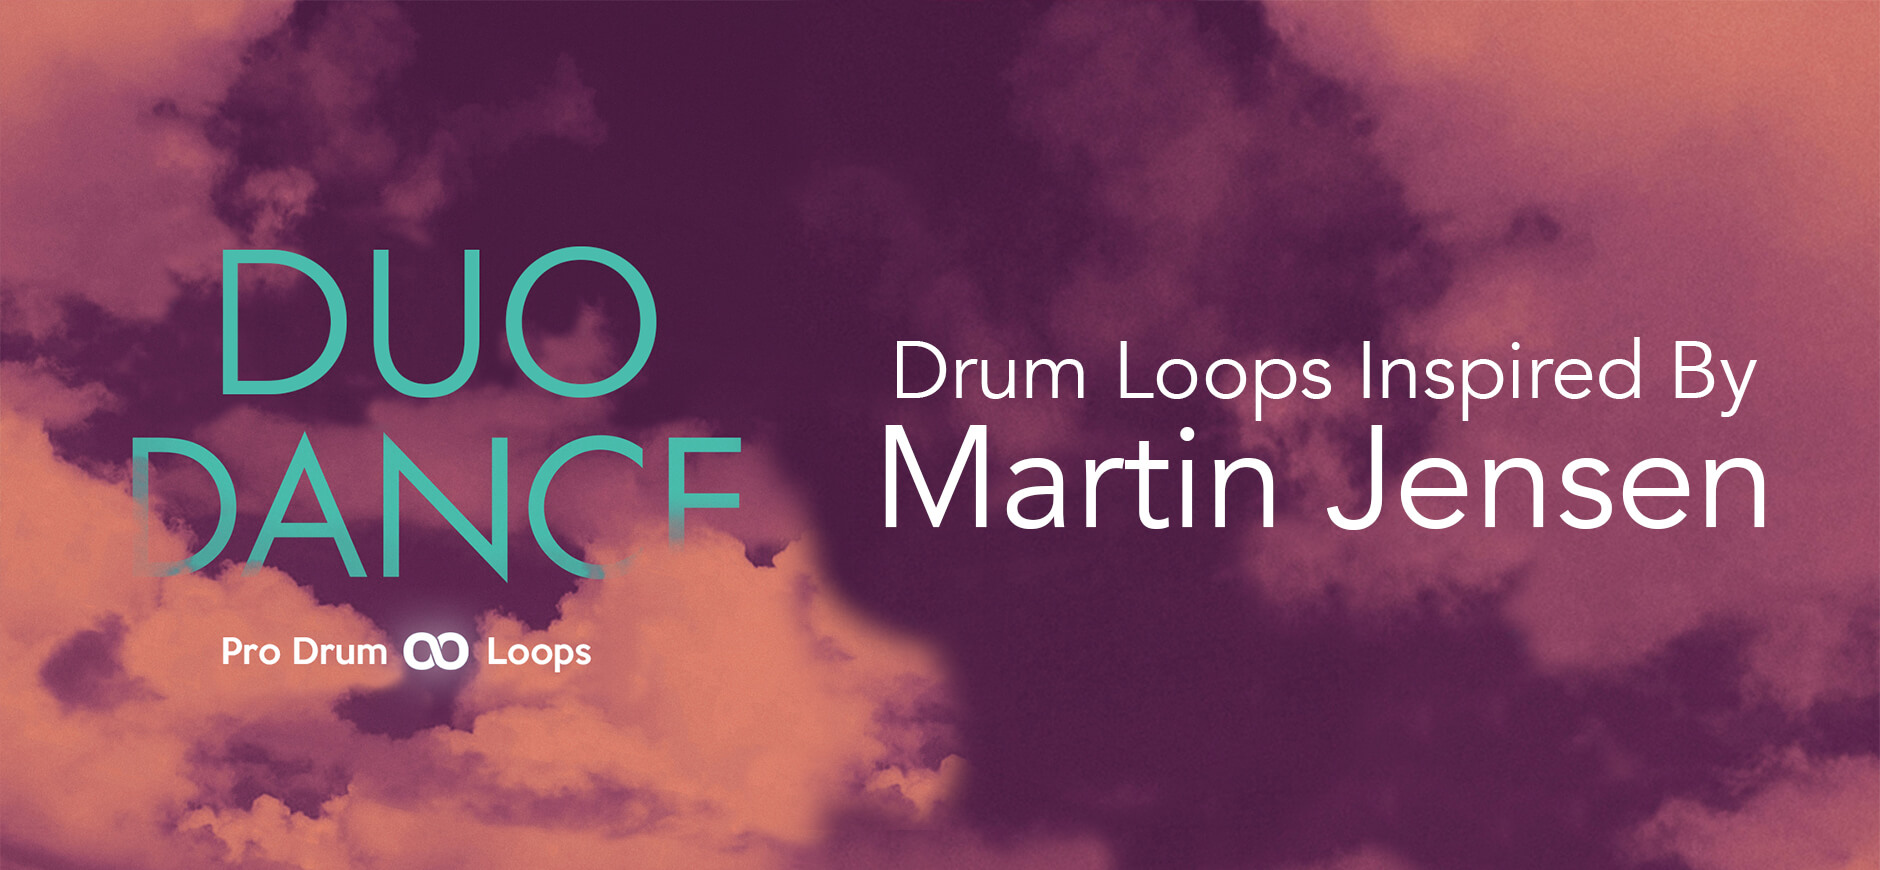 Solo Dance Drum Loops Inspired by Martin Jensen